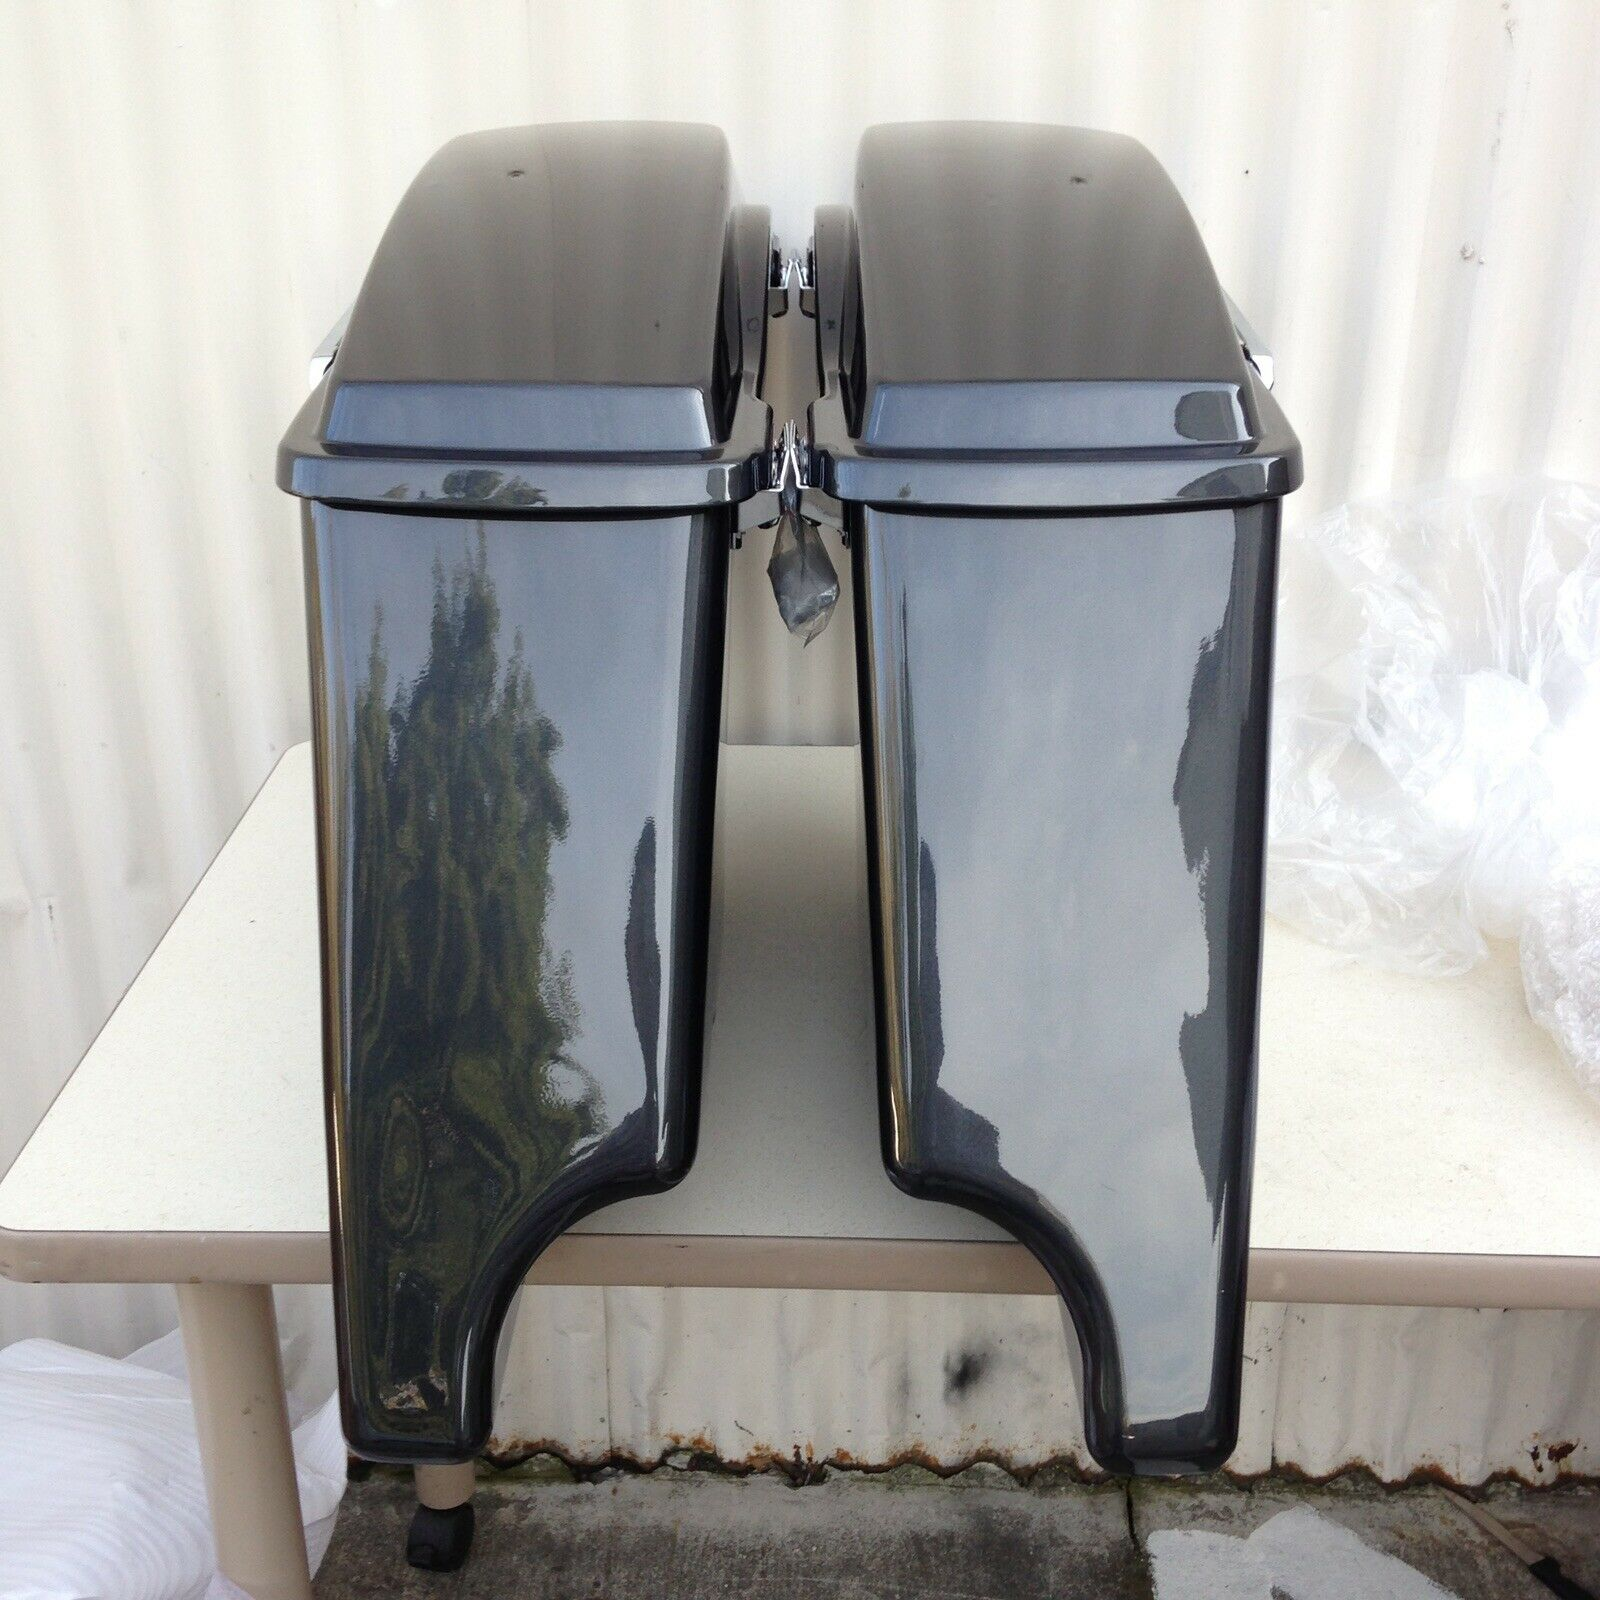 BLACK PEARL Stretched Harley saddlebags Road King